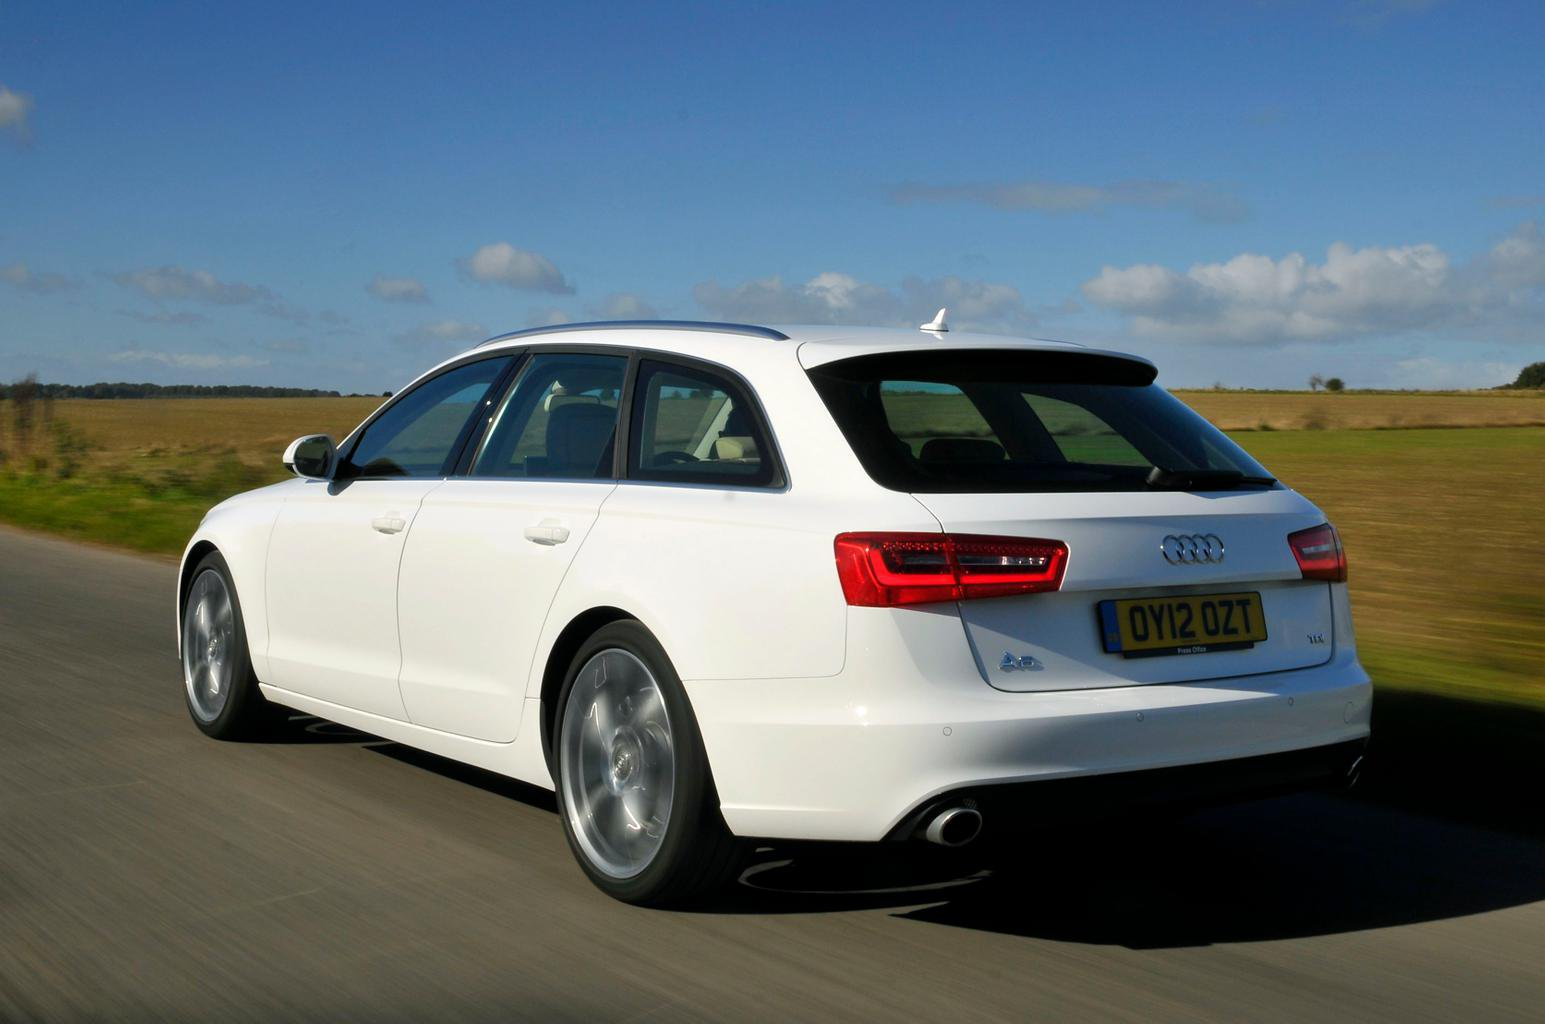 Used test: Audi A6 Avant vs BMW 5 Series Touring vs Jaguar XF Sportbrake